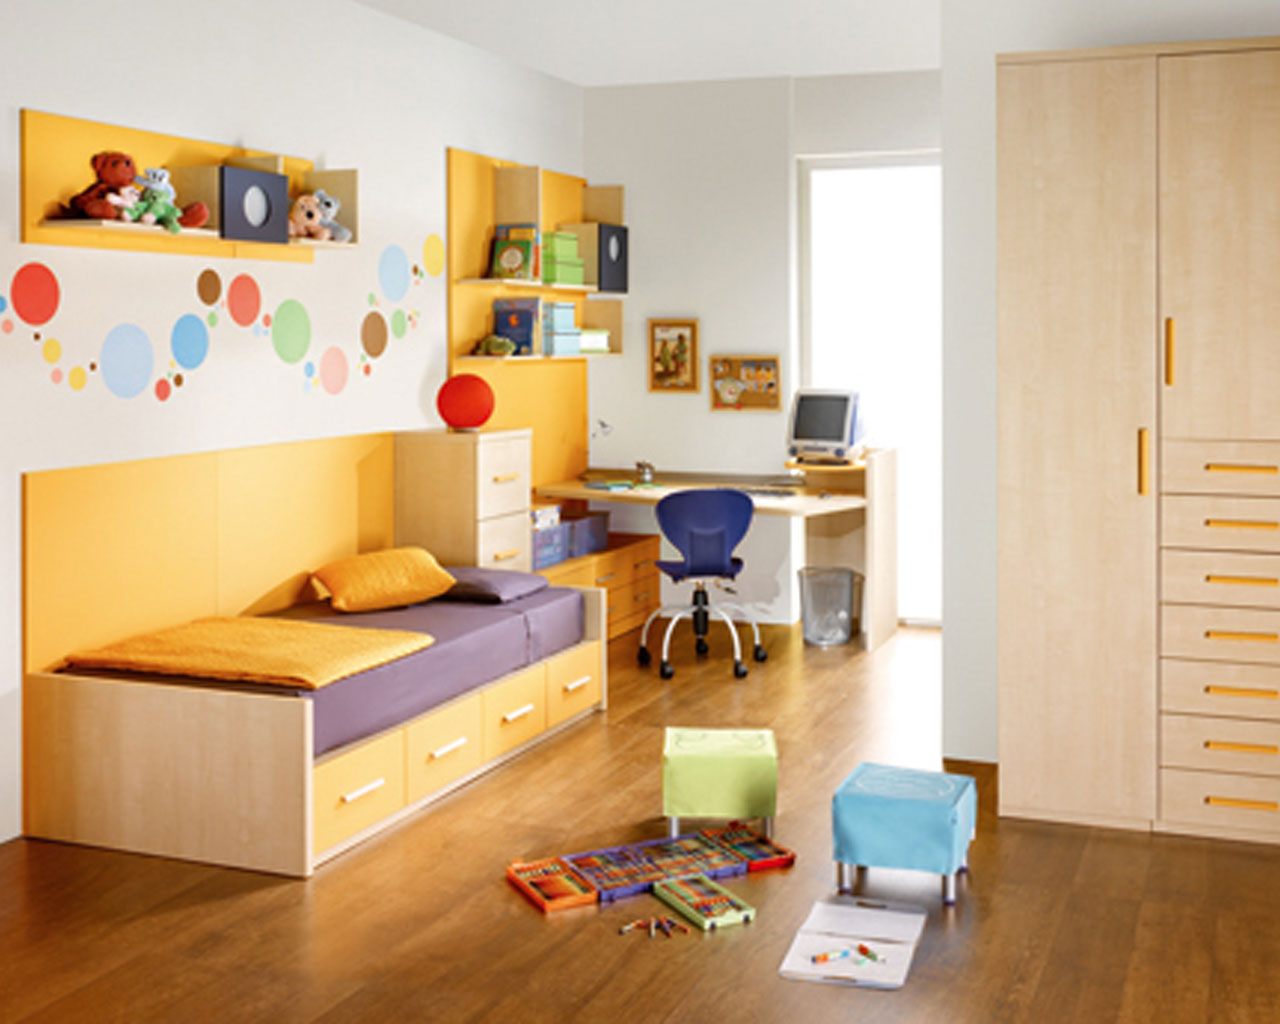 Kids room decor and design ideas as the easy yet effective for Fun room decor